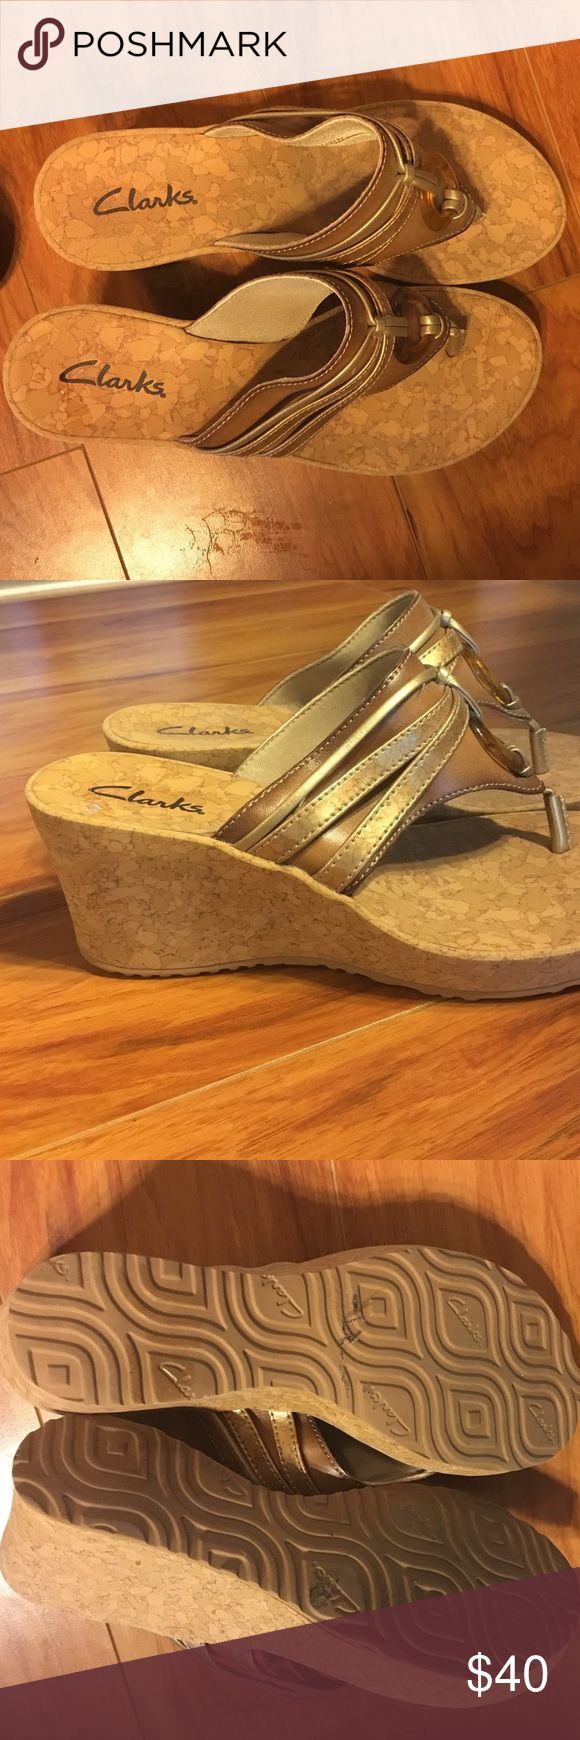 Wedge sandals Clarks wedge sandals (worn only once) Clarks Shoes Sandals